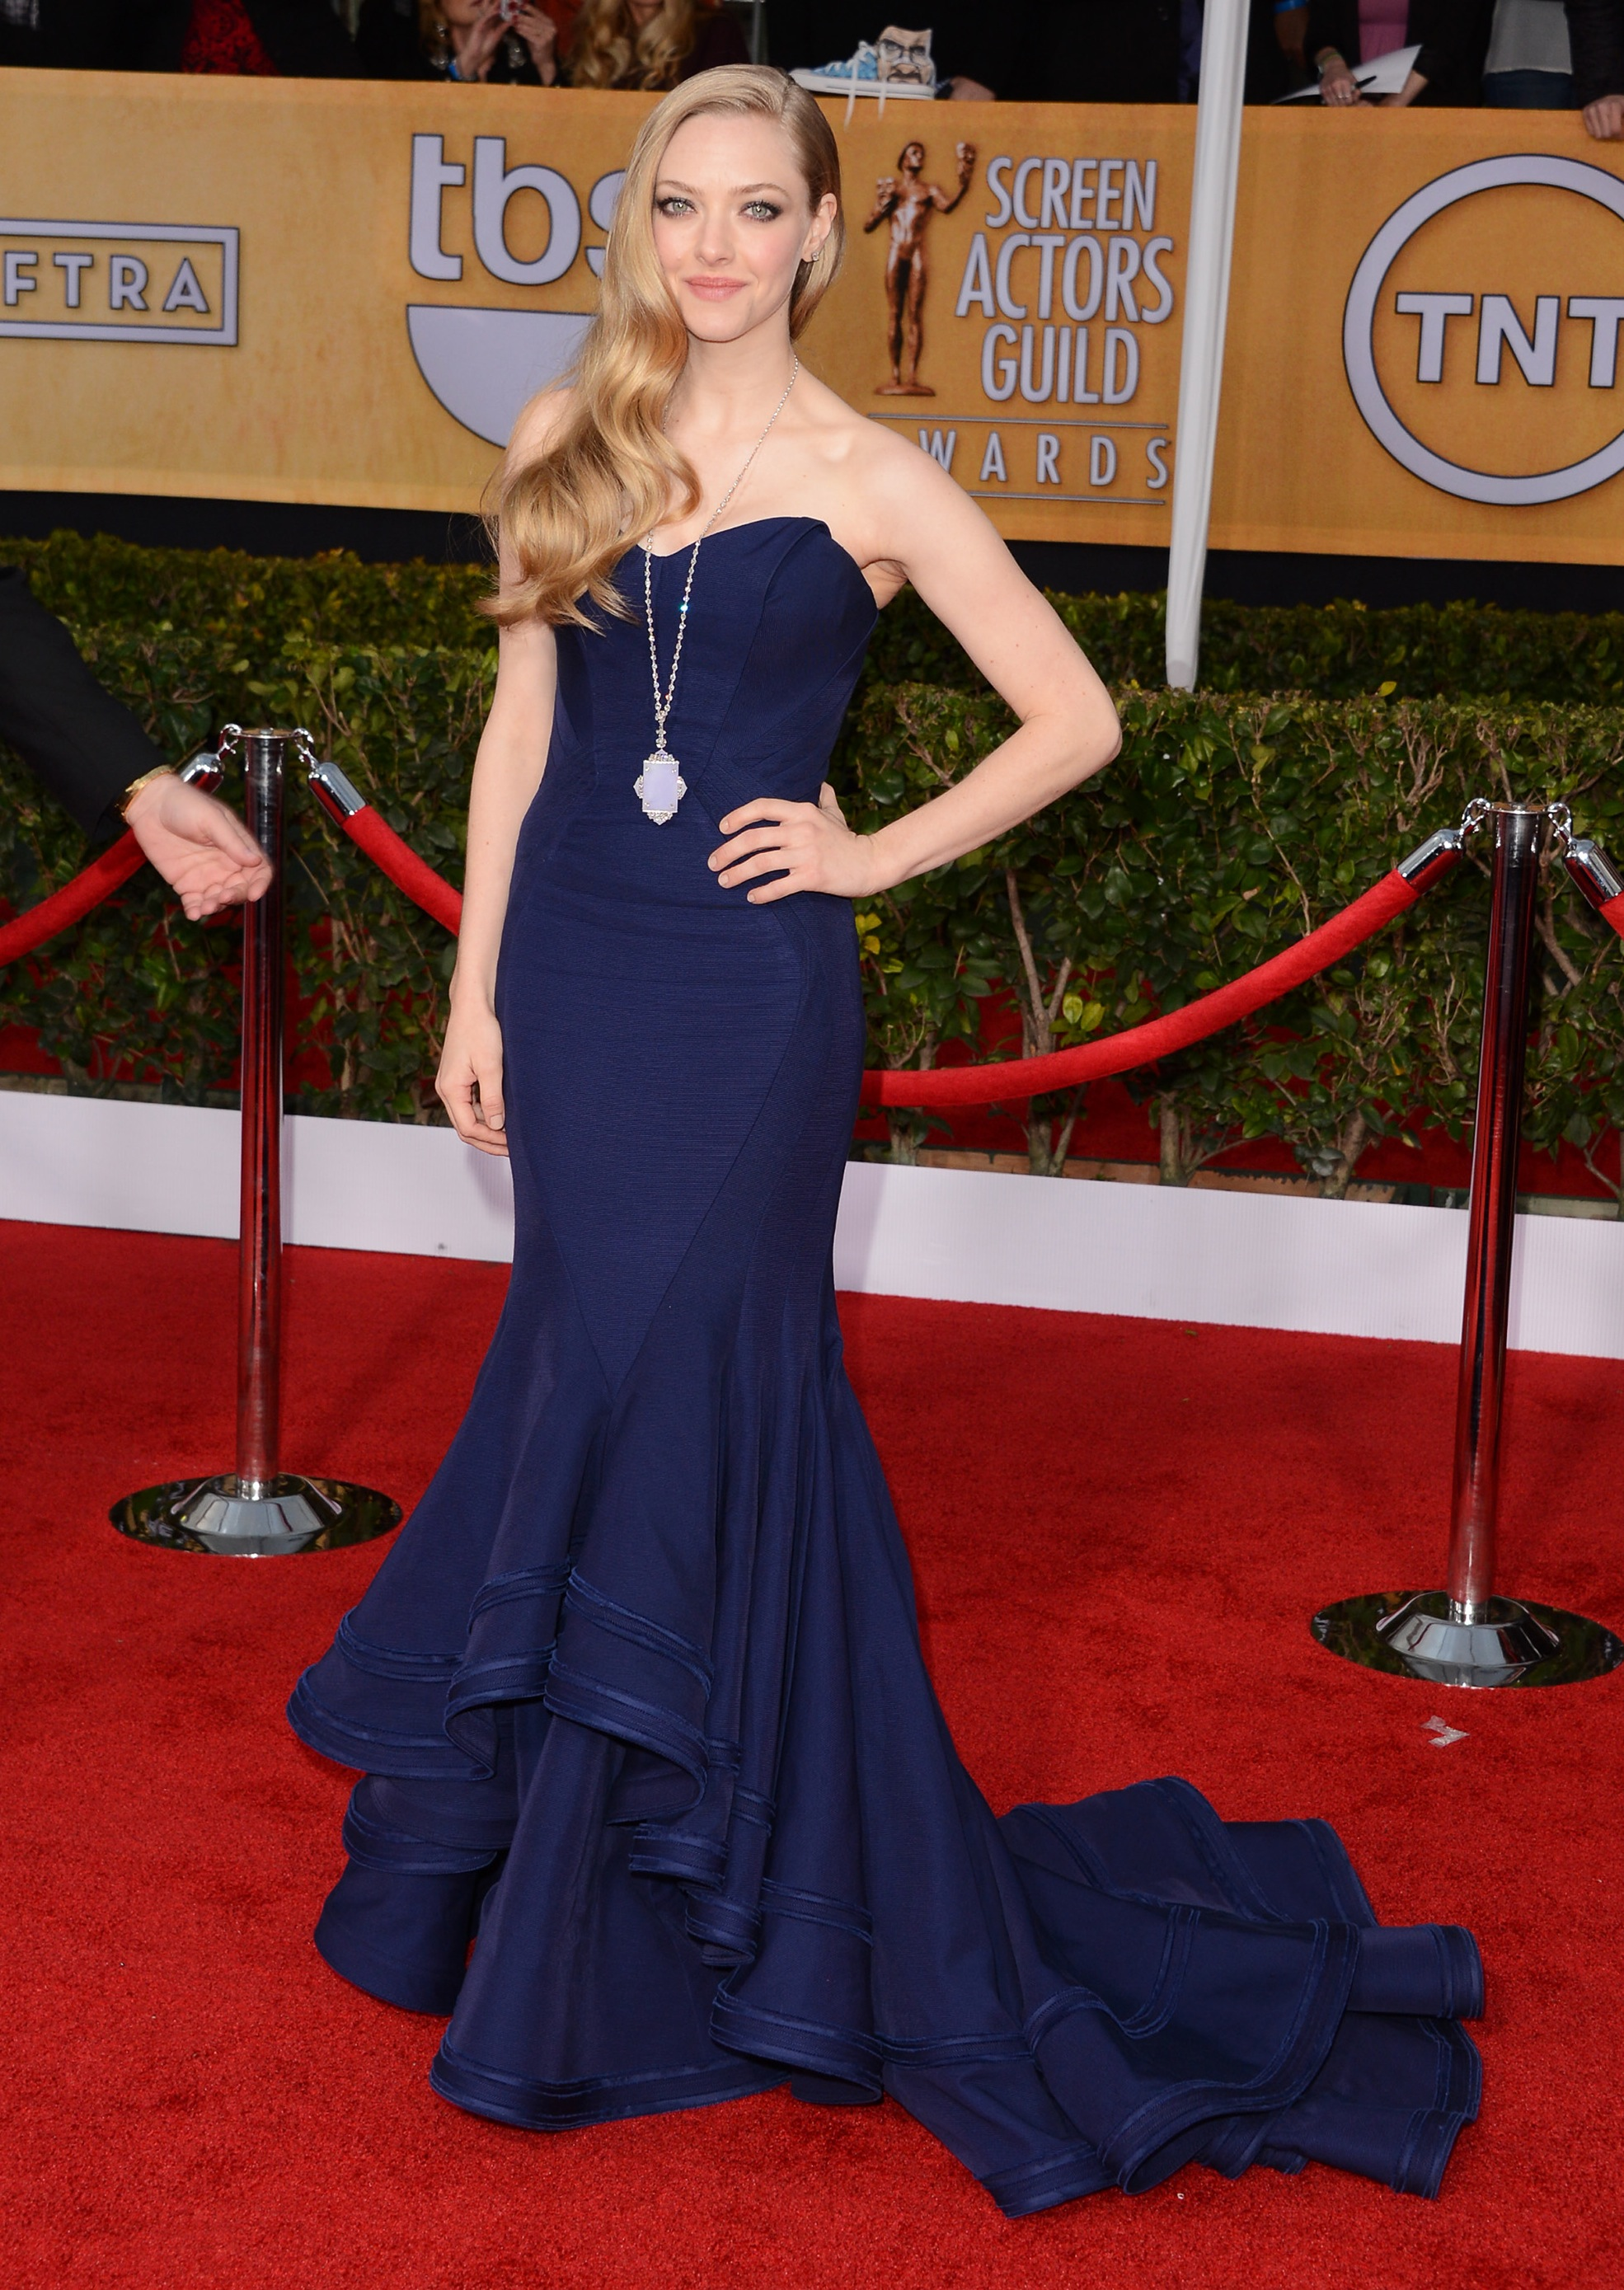 Posen is already a go-to fixture on the red carpet, and Amanda Seyfried's navy blue SAG Awards gown is the most recent reason why A-listers love him. Who do you think will be spotted first in the new line?